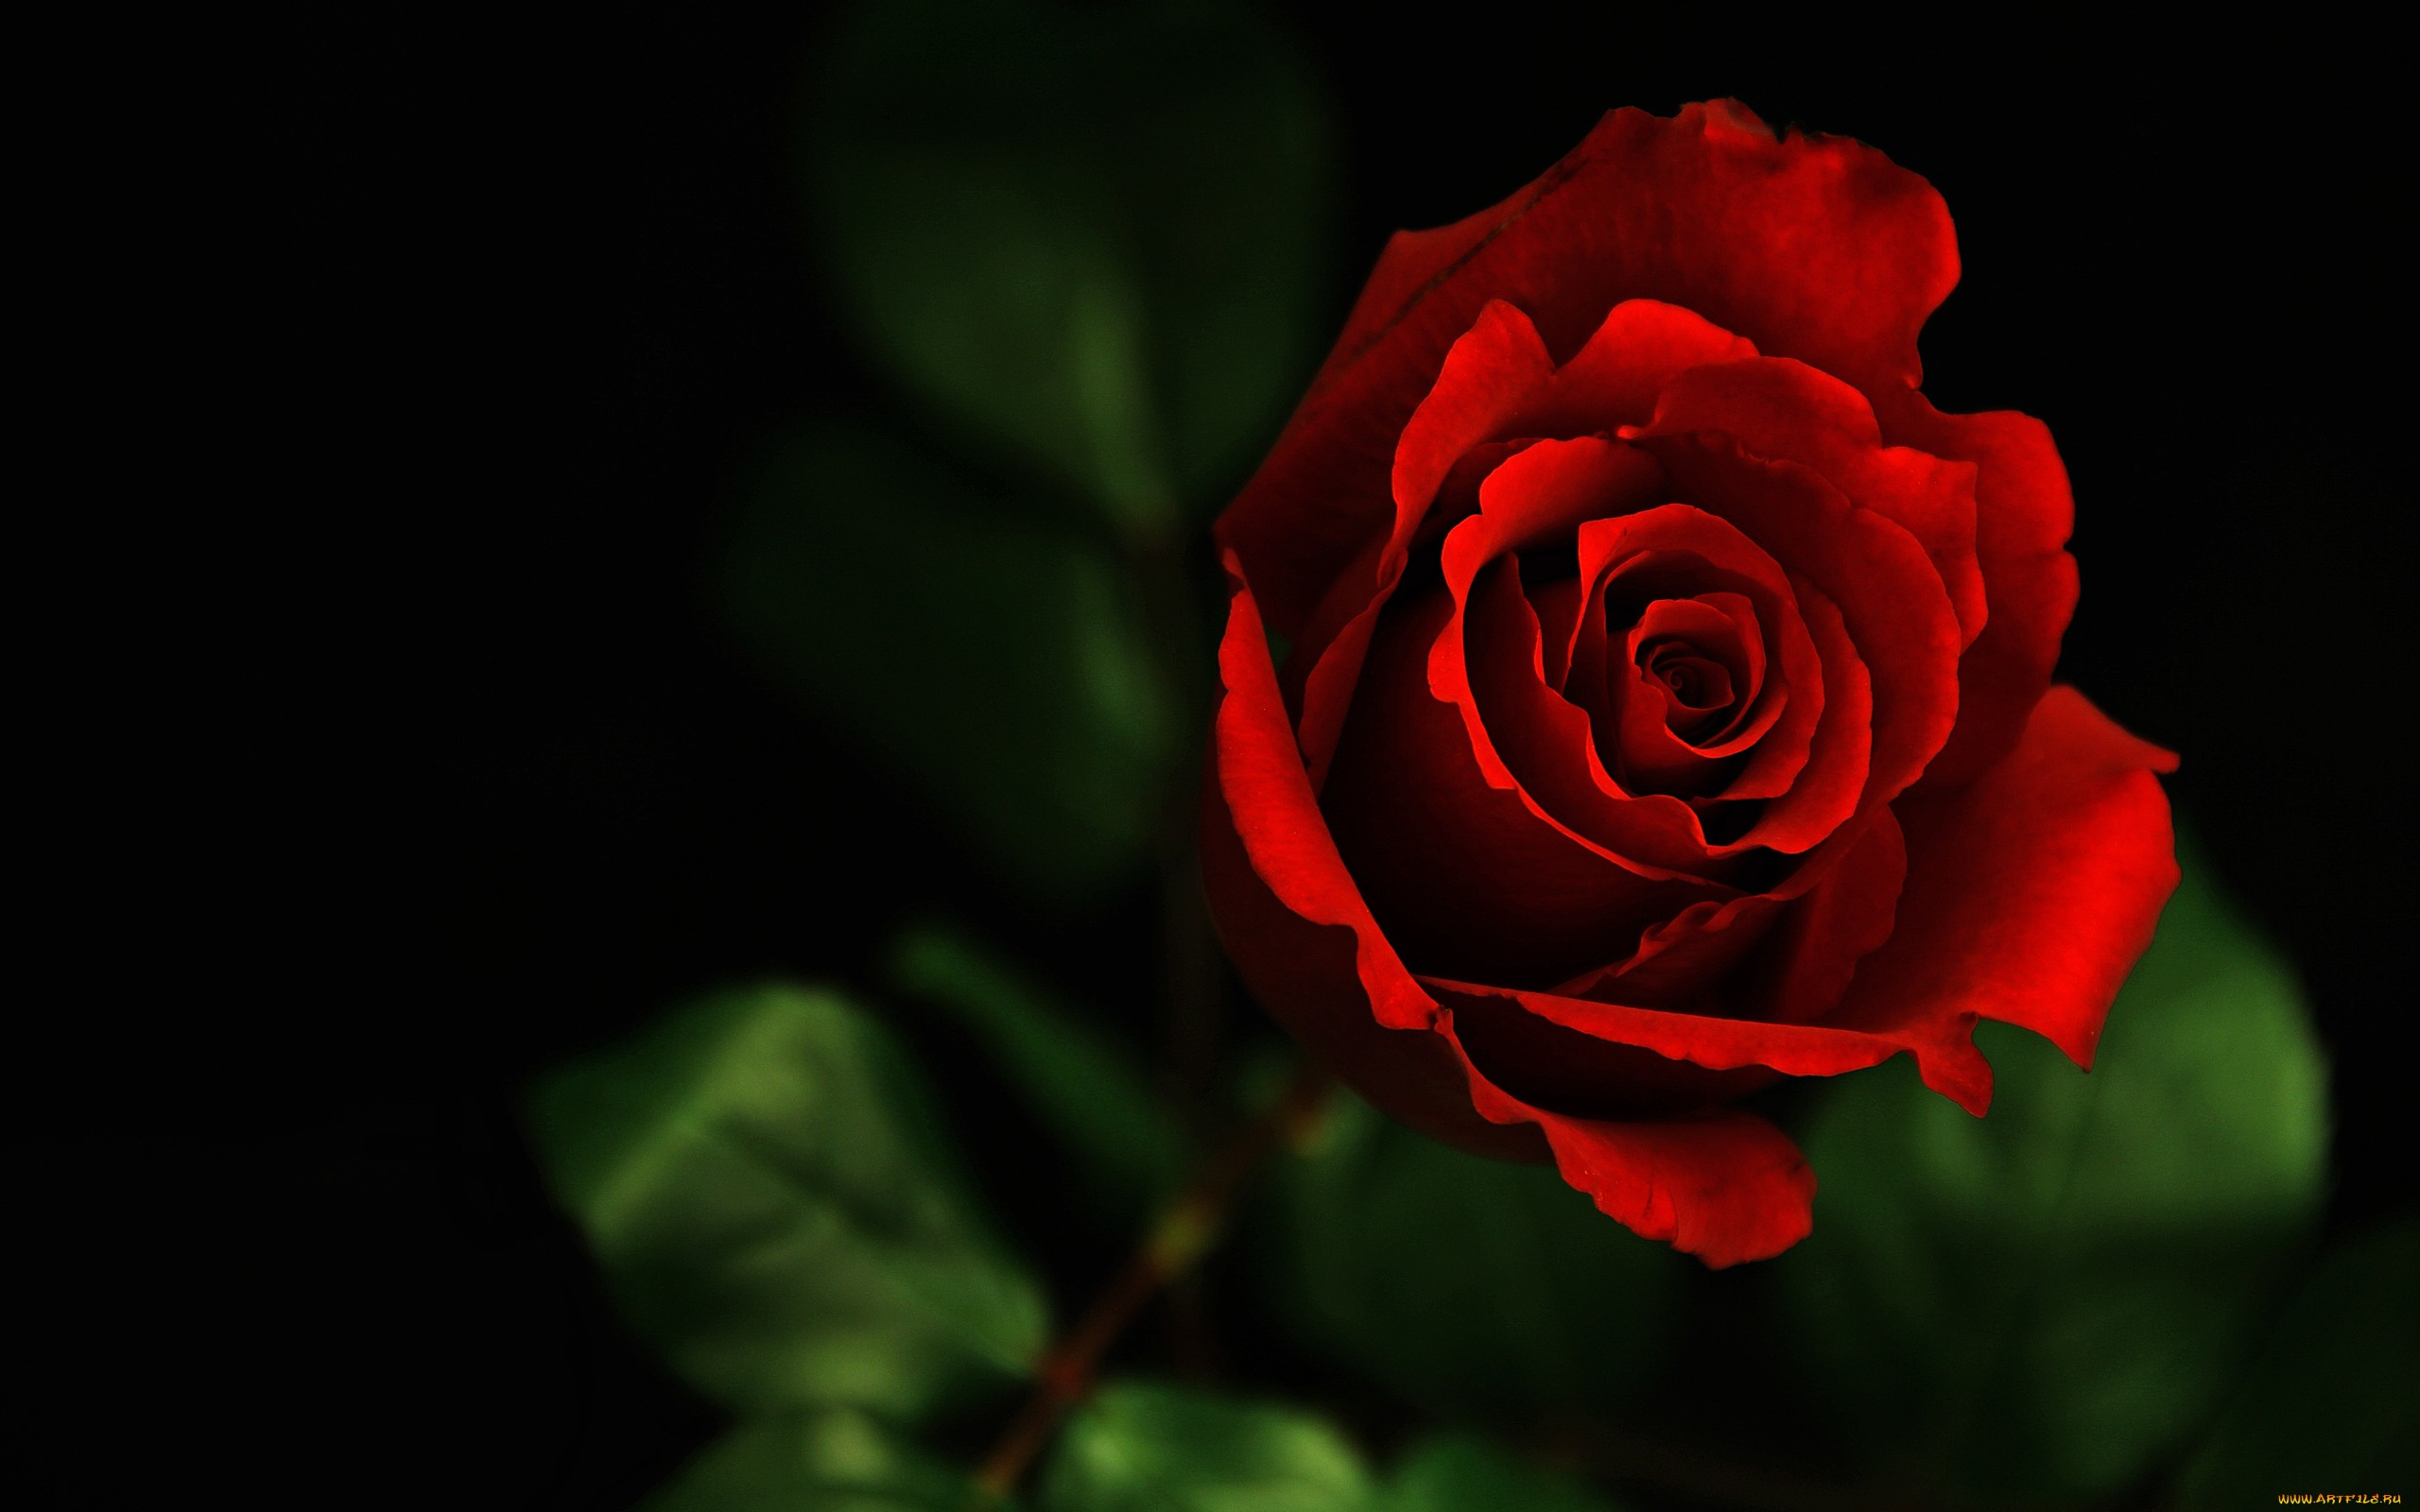 Beautiful Roses Wallpapers: Mothers Day Beautiful Flower Red Rose Wallpapers Hd 2560x1600px